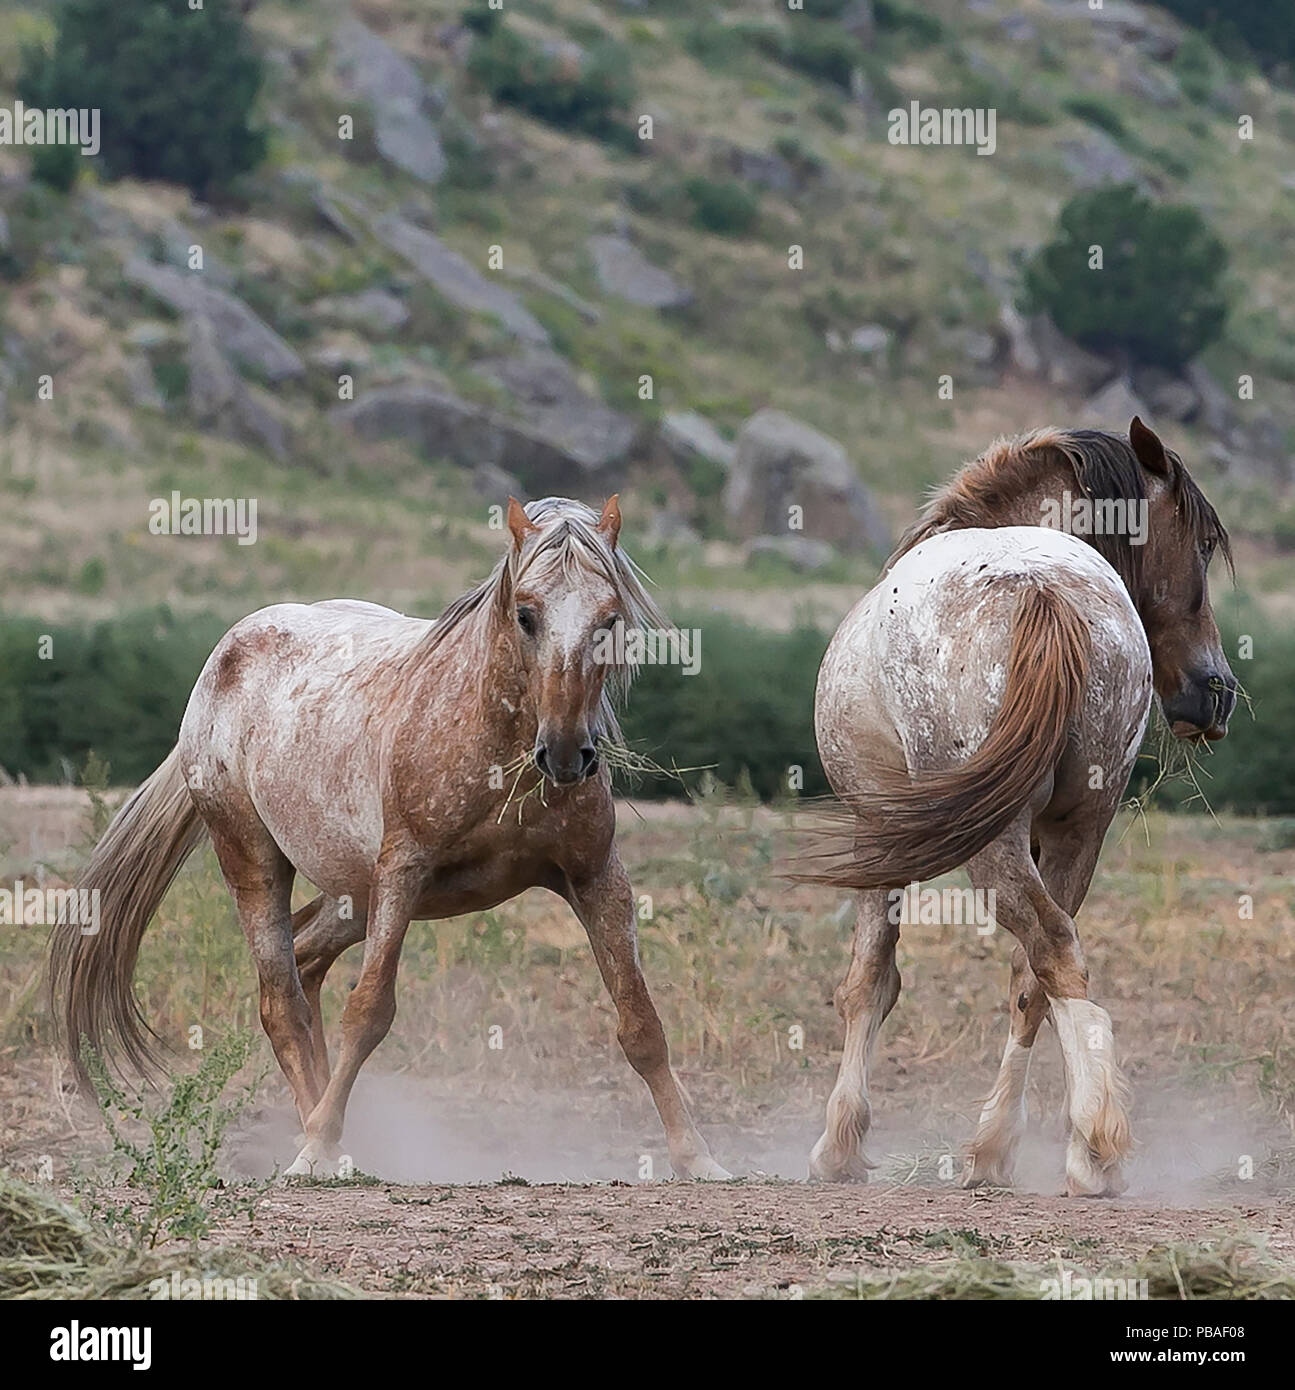 Two formerly wild Mustang stallions posture at Black Hills Wild Horse Sanctuary, South Dakota, USA. September. - Stock Image